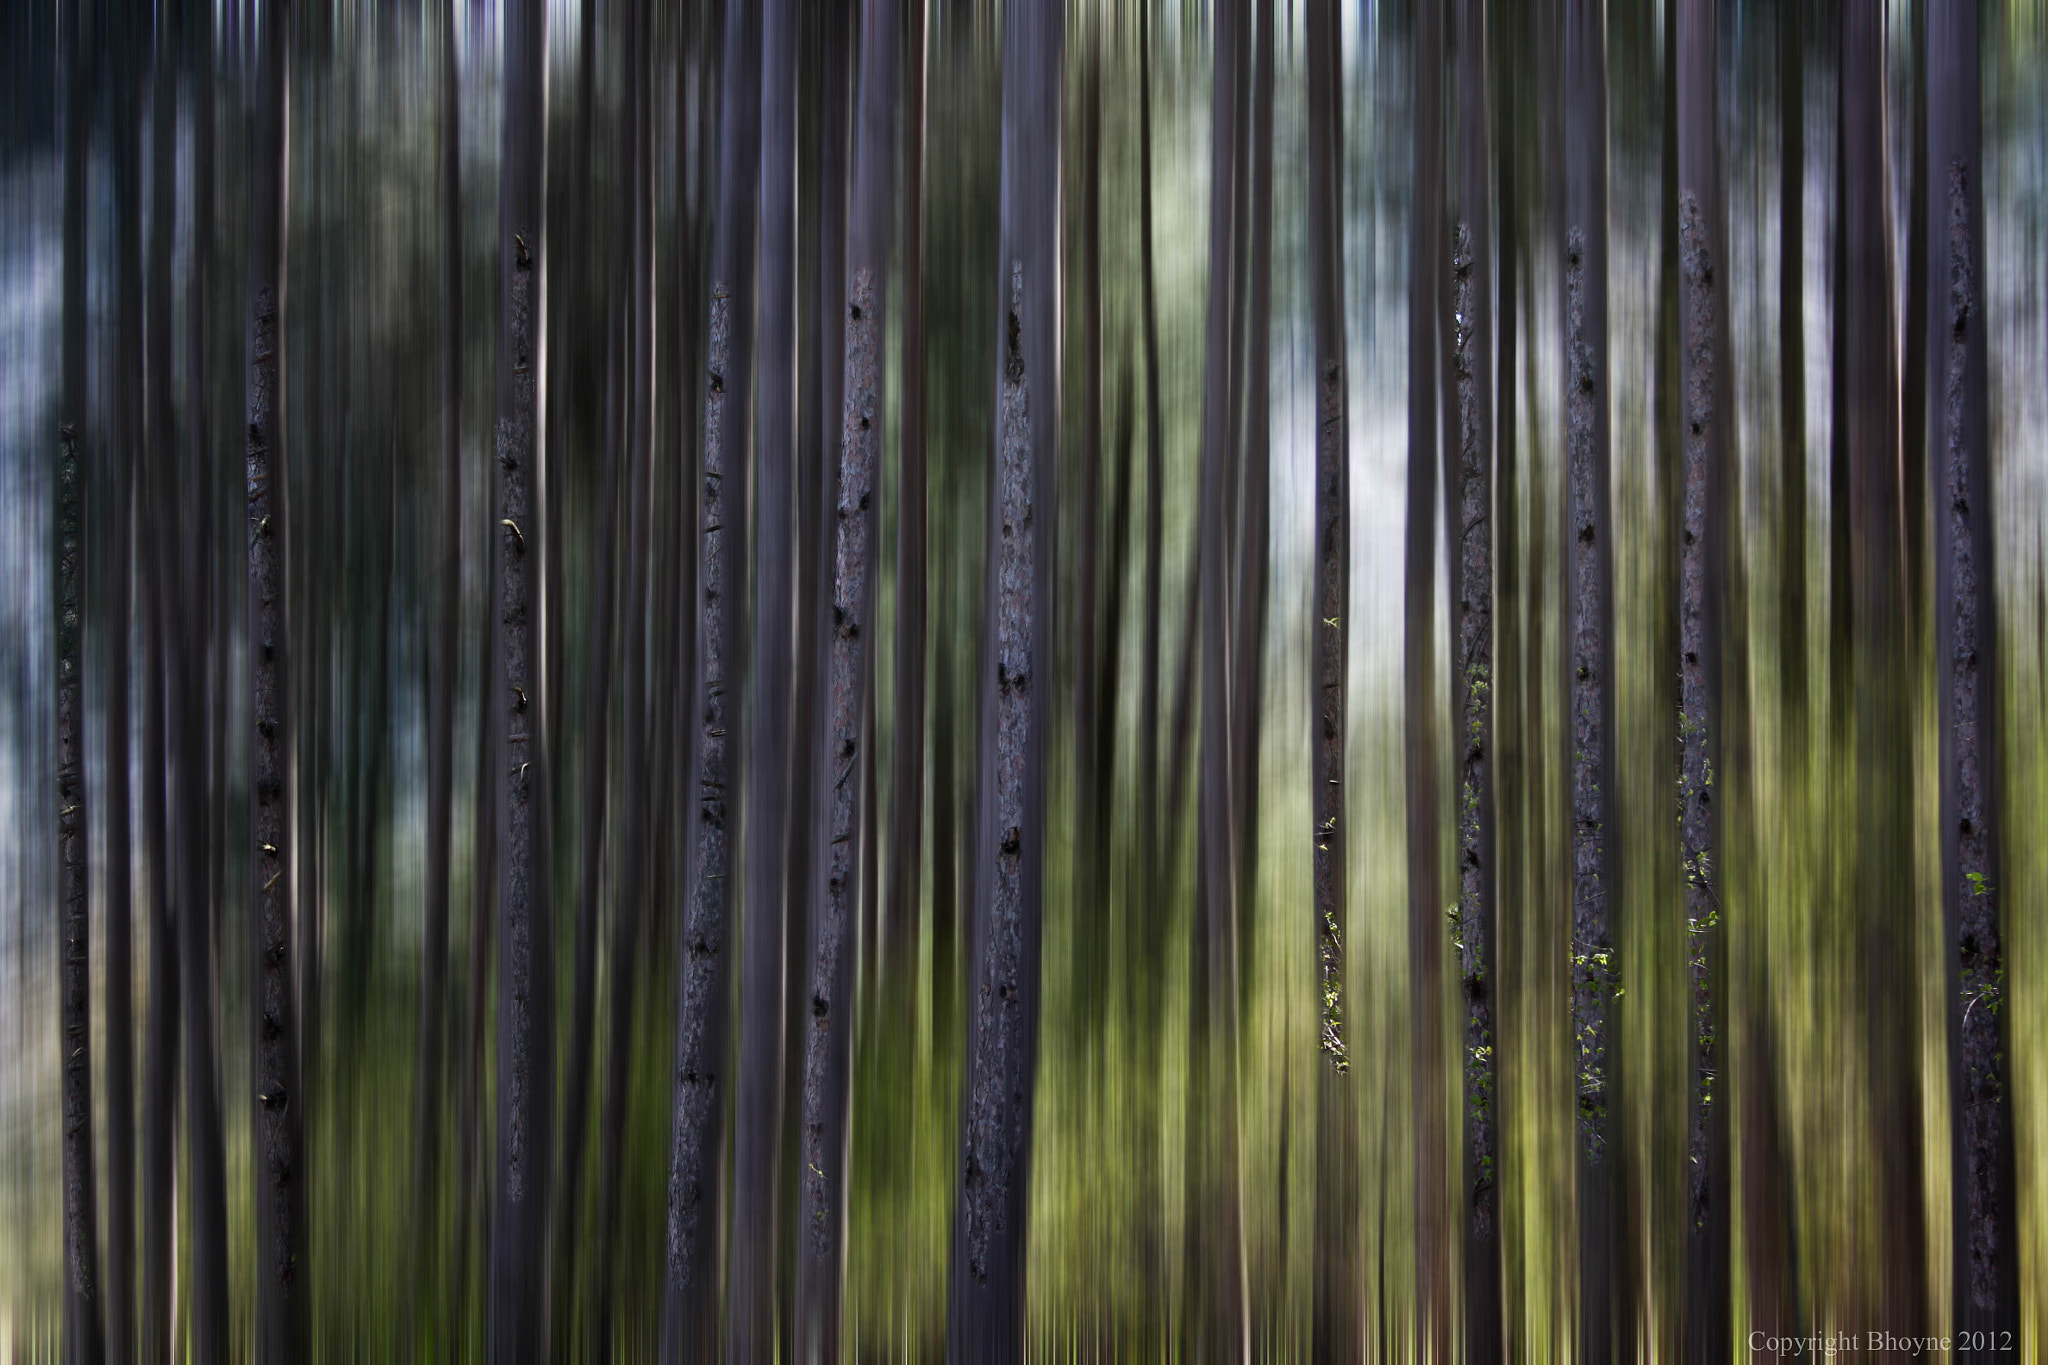 Photograph In the pines by Brian Hoyne on 500px